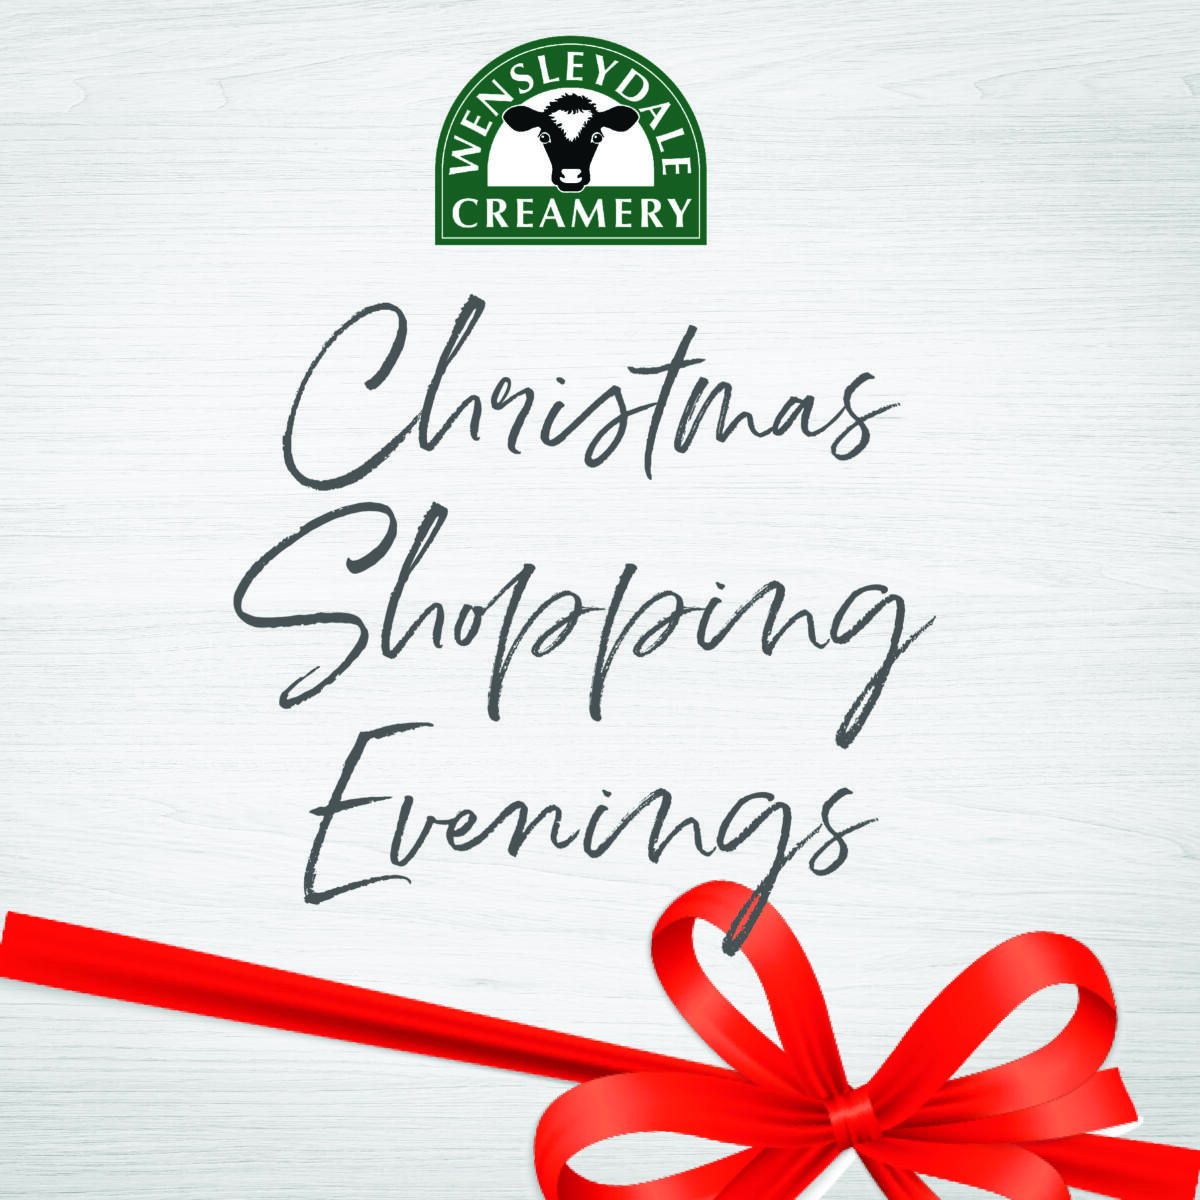 Christmas Shopping Evening Tuesday 7th December 5 - 8:30pm